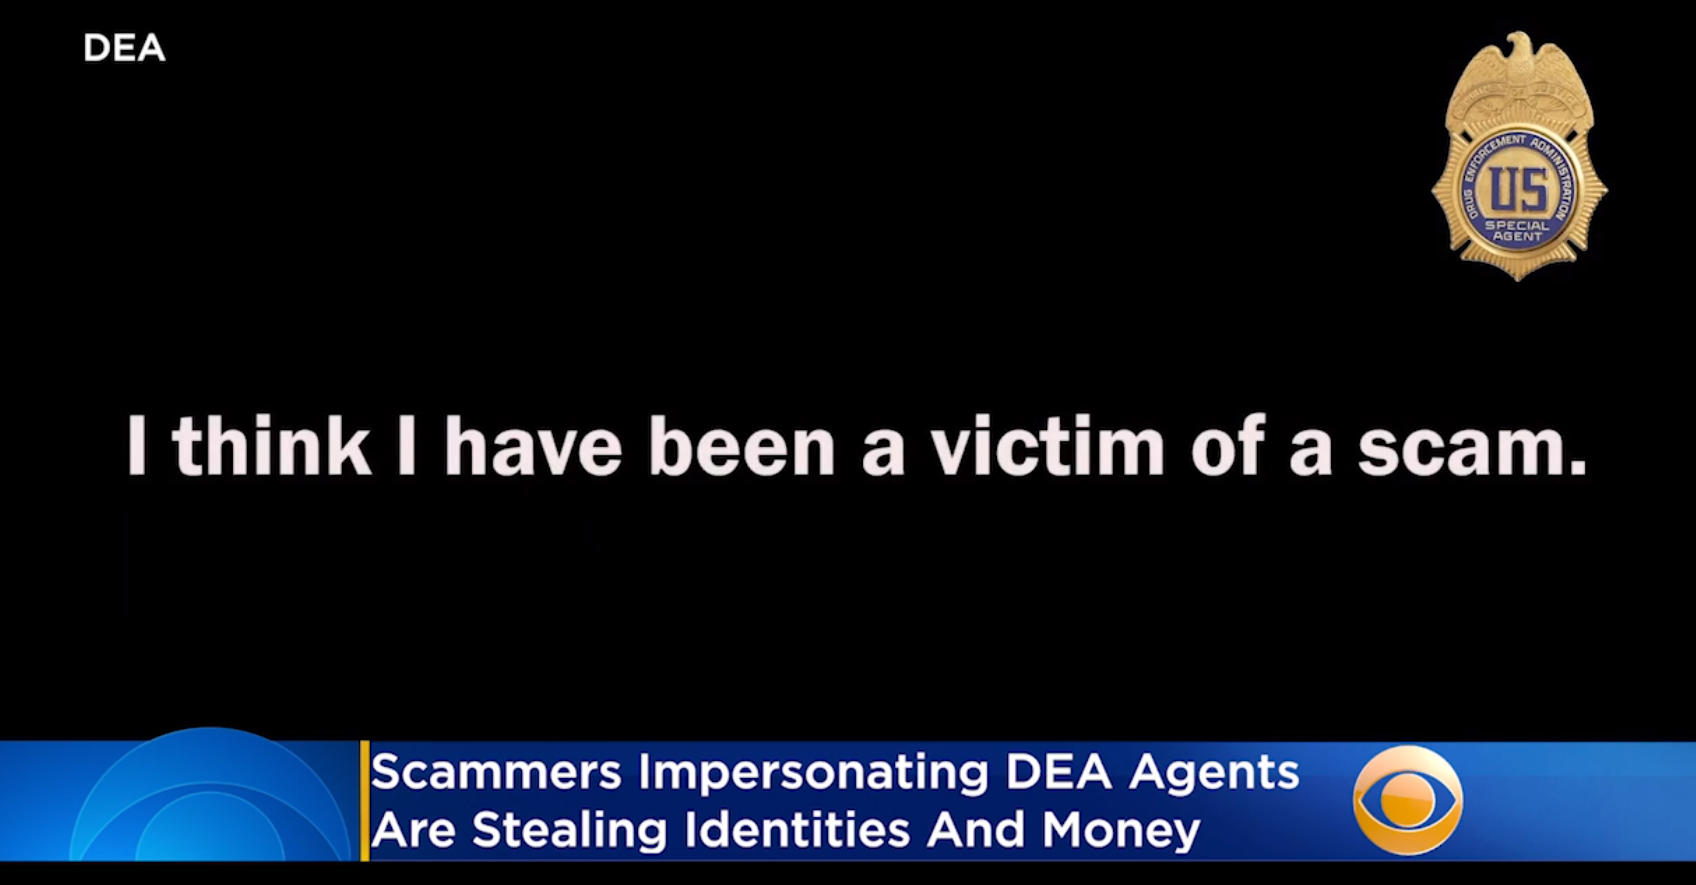 DEA Warning: Scammers Impersonating DEA Agents Are Stealing Identities, Money